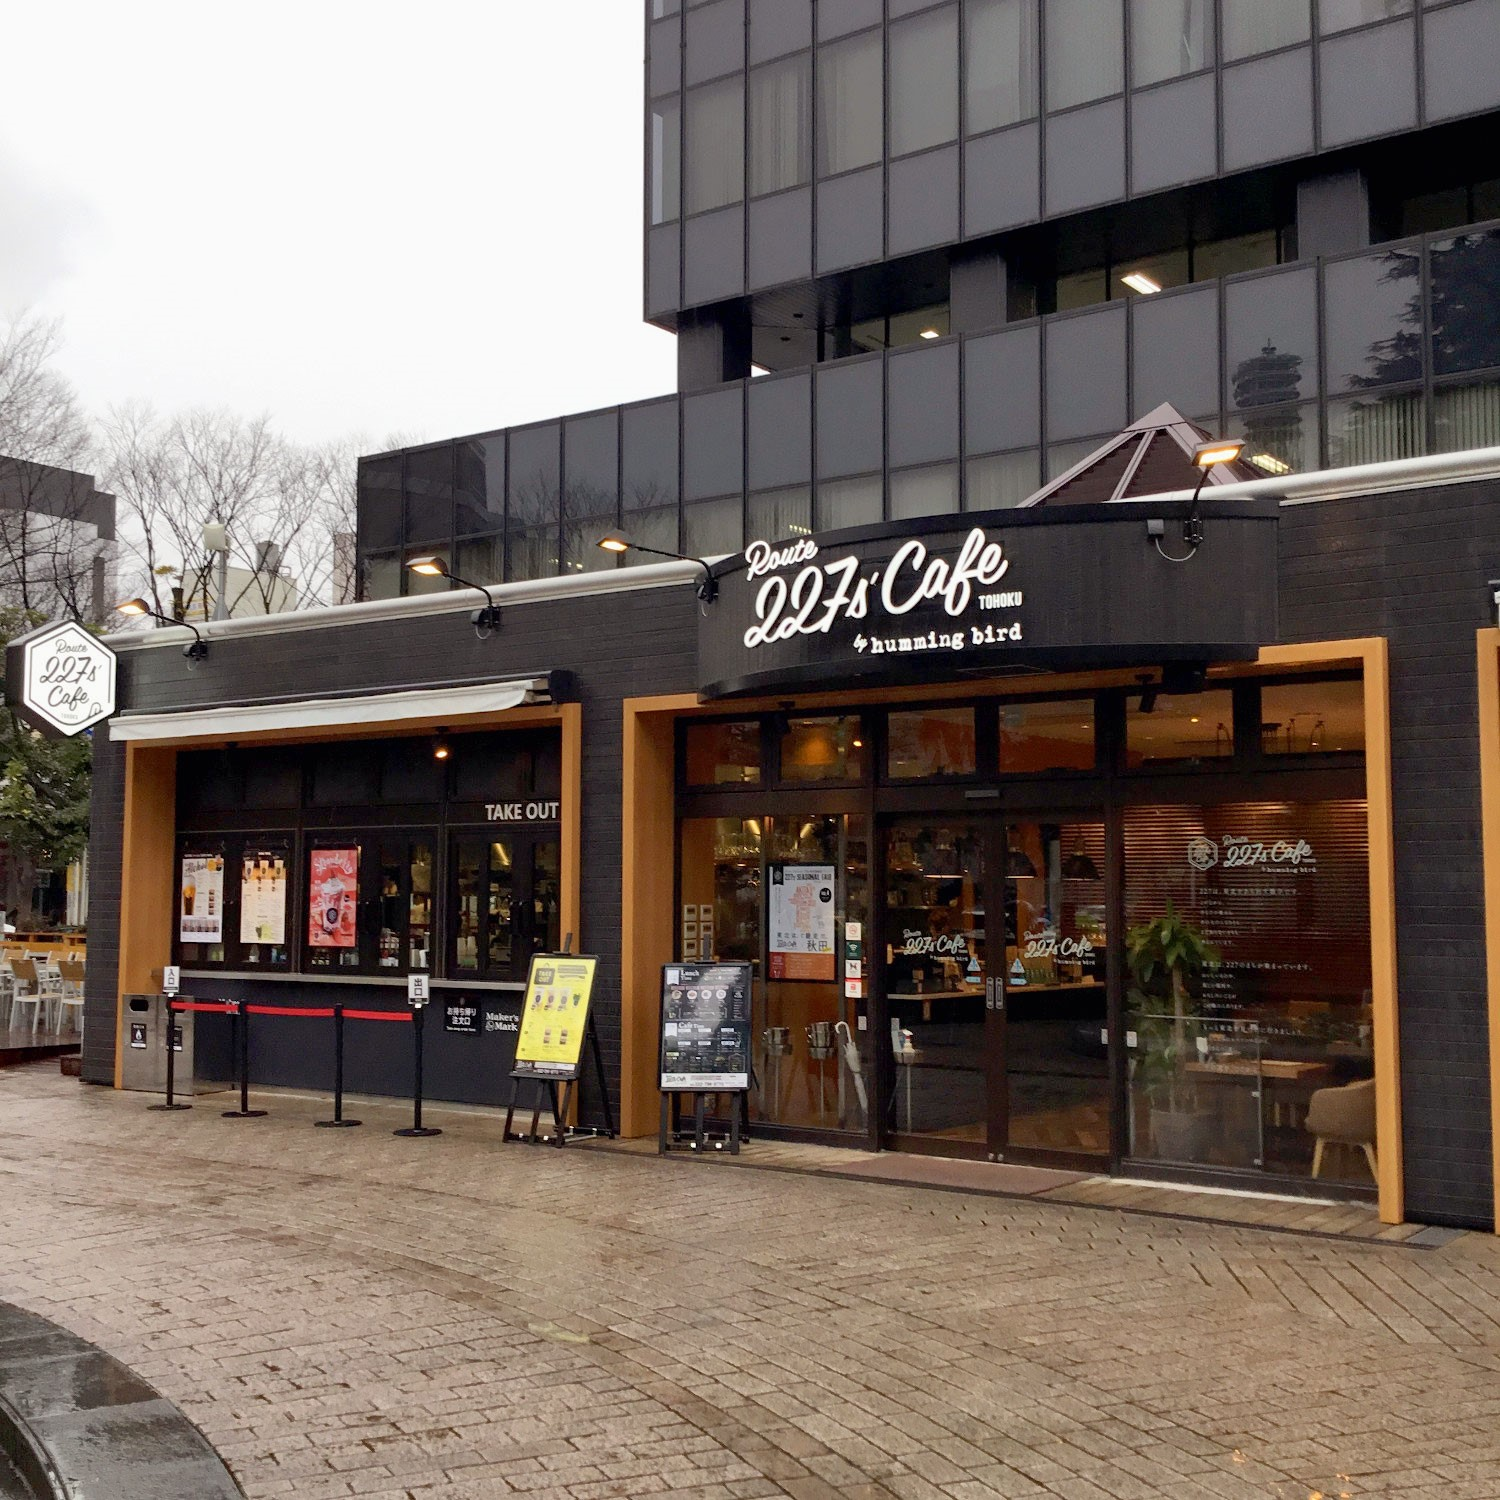 Route 227s' Cafe TOHOKU